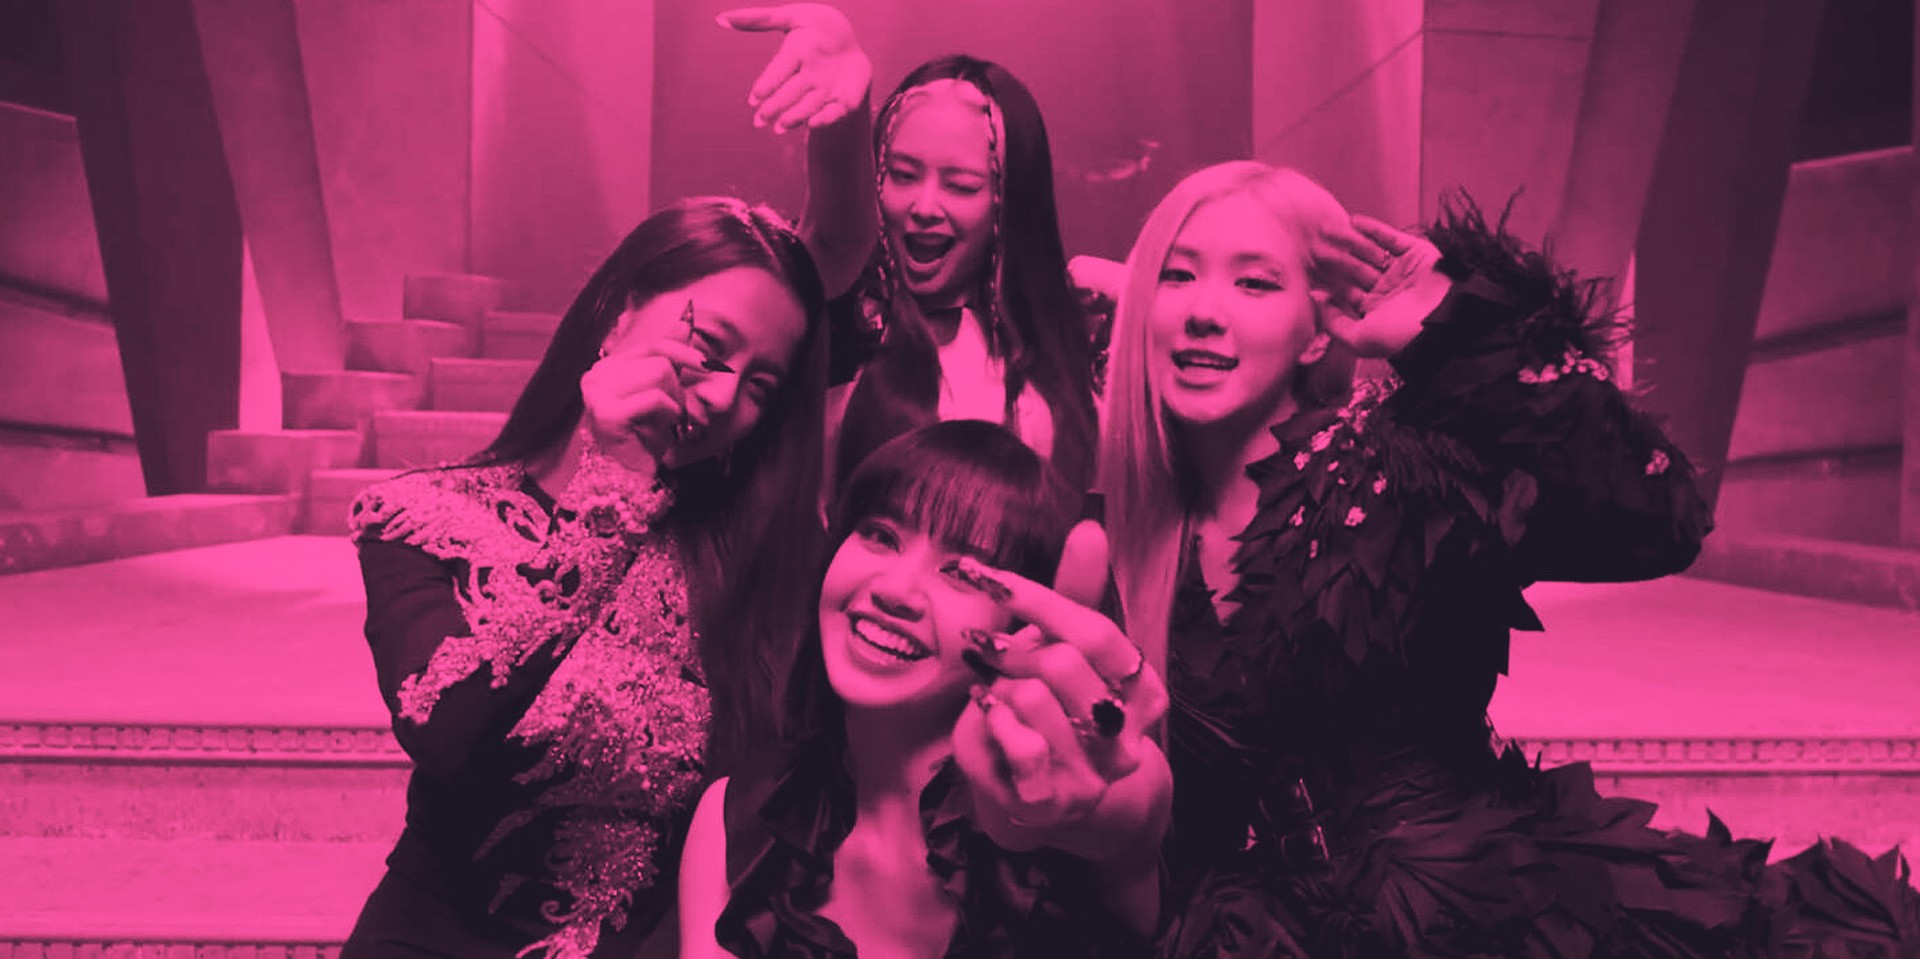 BLACKPINK to hit Netflix with new documentary Light Up the Sky this October